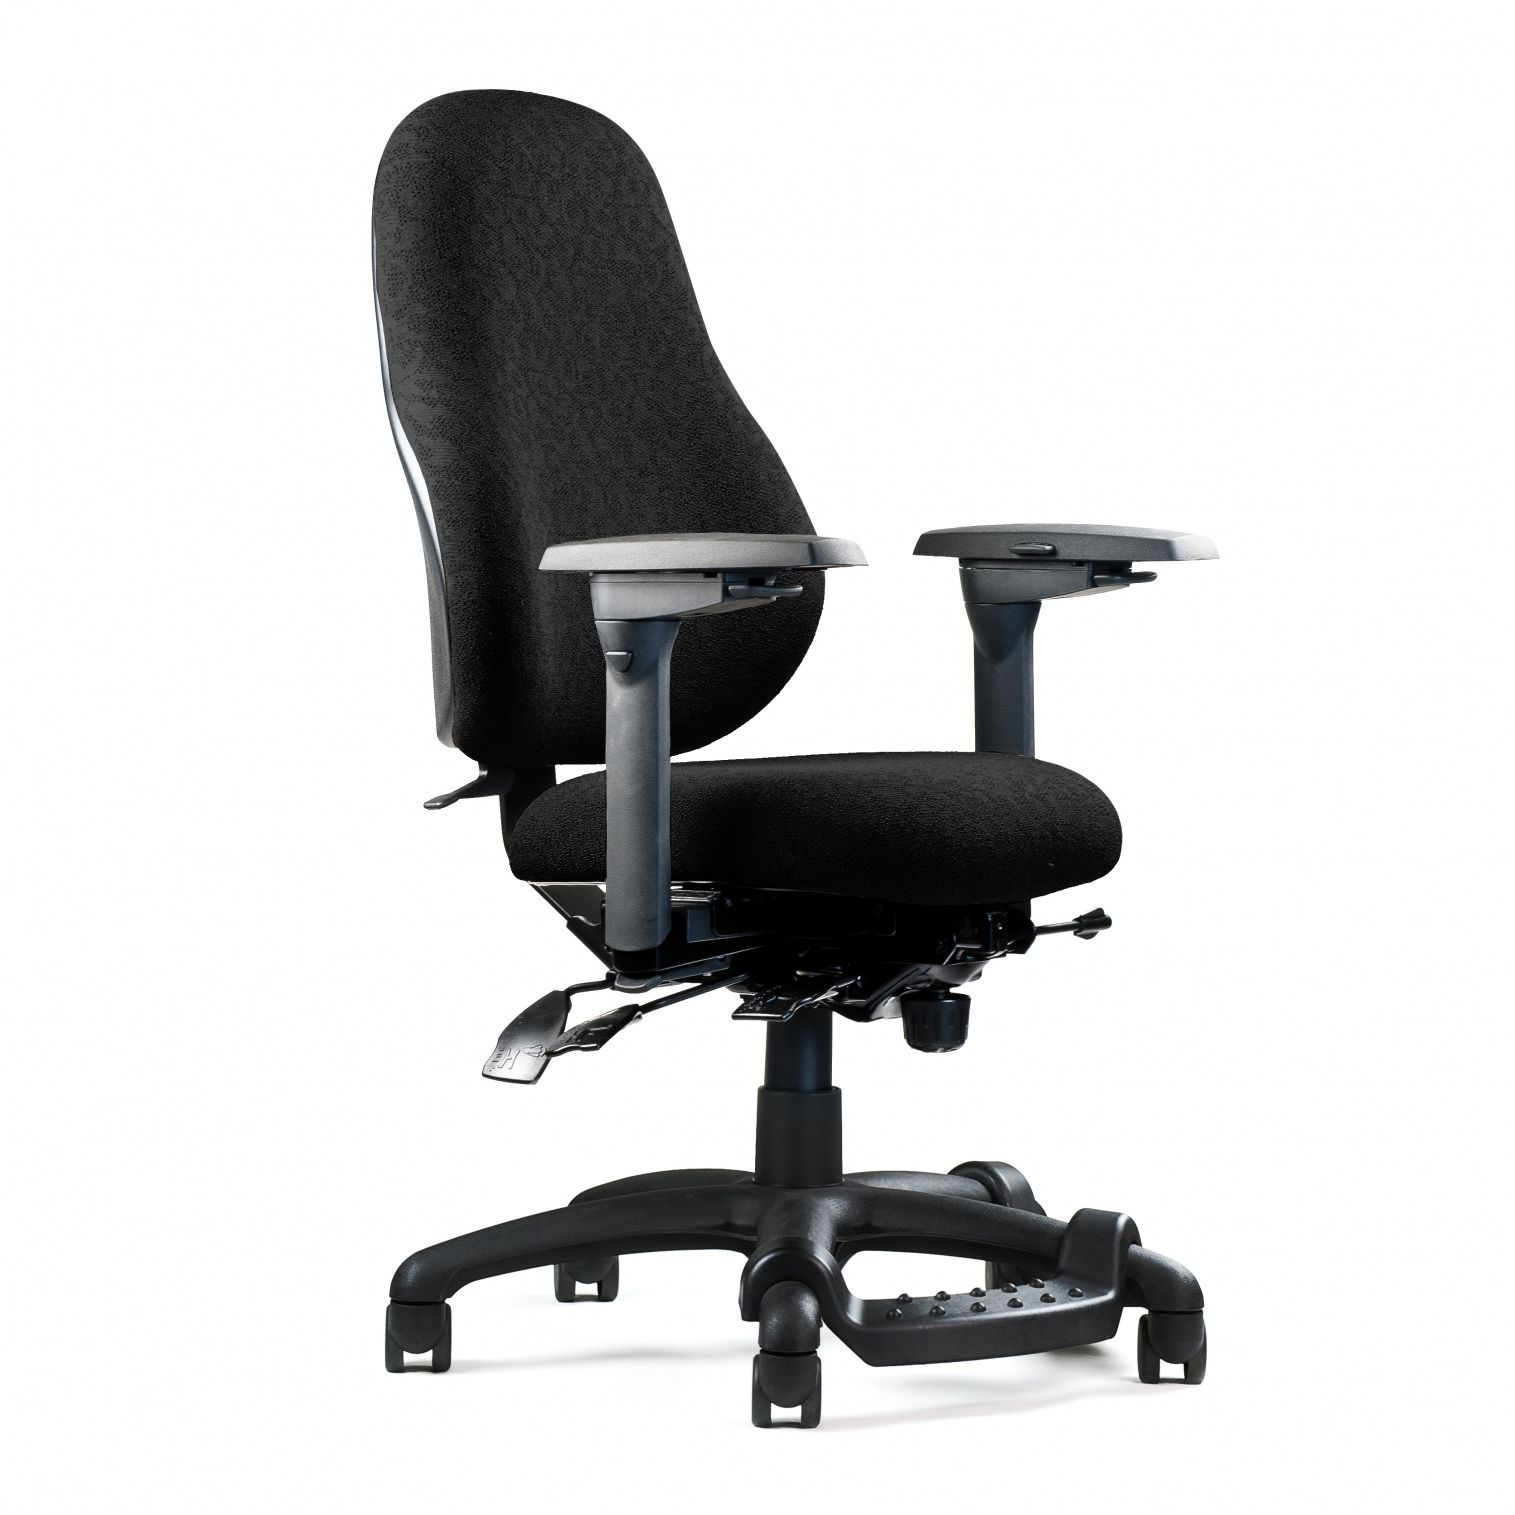 Office Chair Foot Rest Large Home Office Furniture Check More At Http Www Drjamesghoodblog Com Office Chair Foot Rest